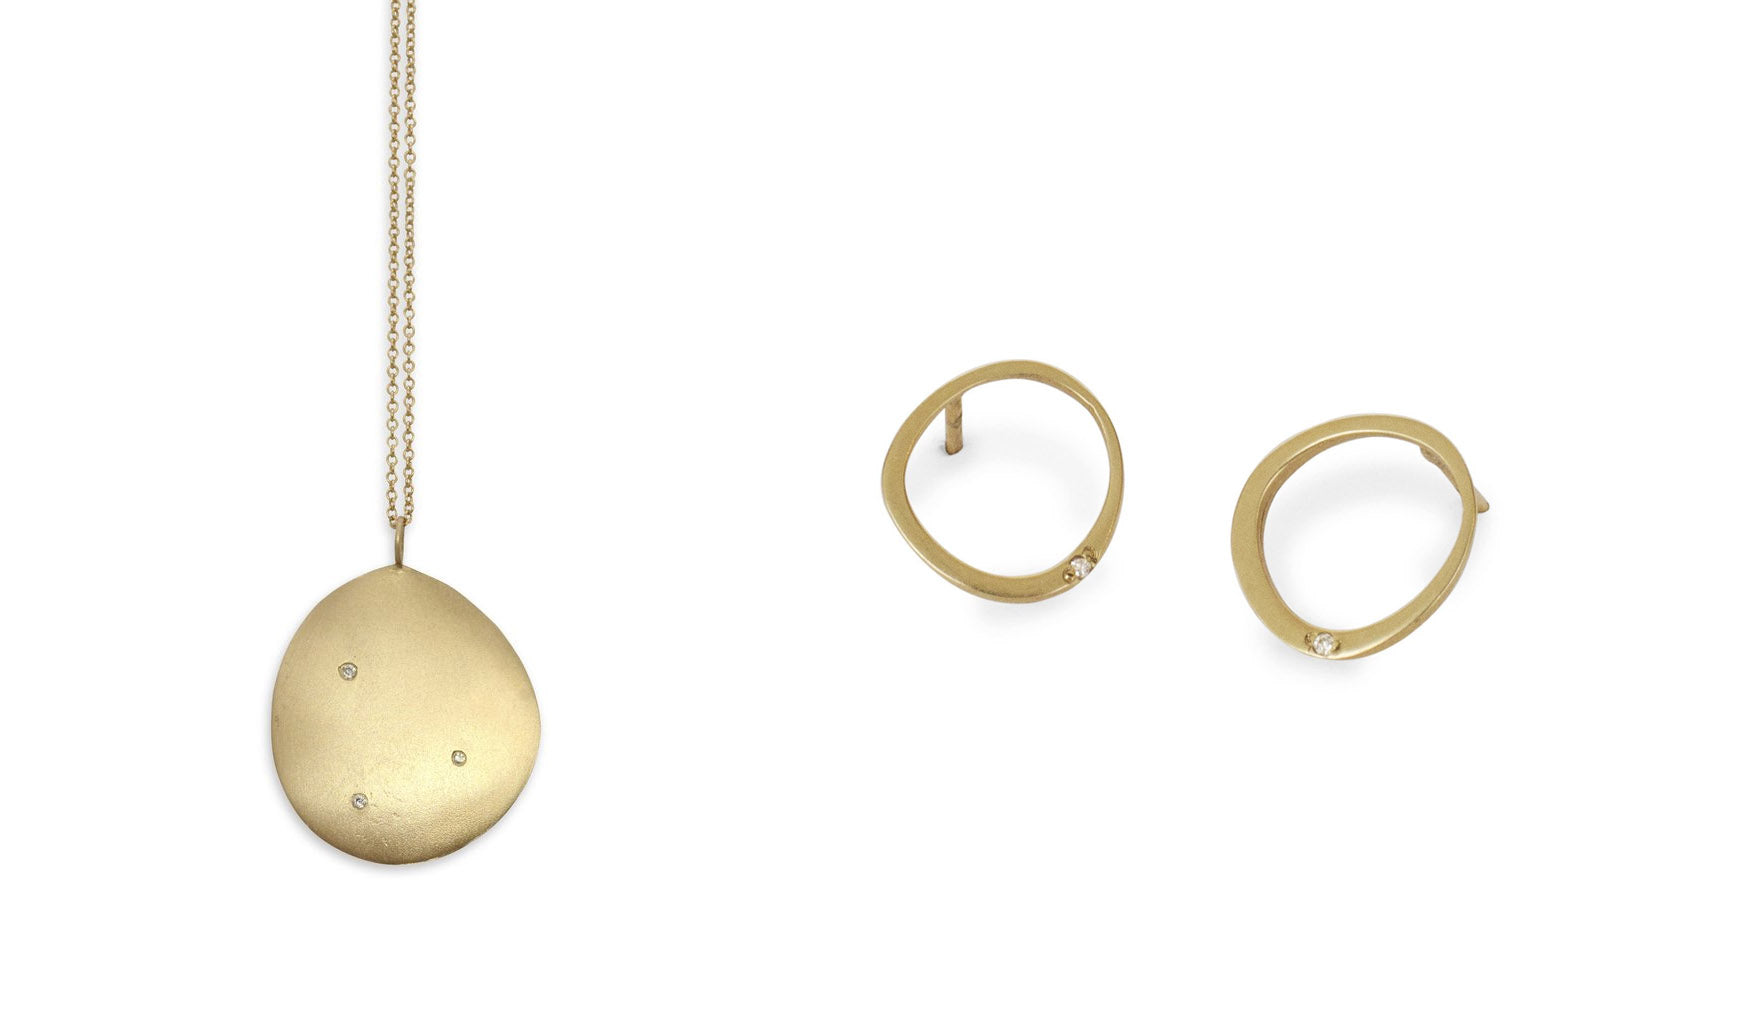 Large Disc Pendant and Offset Circle Stud Jewelry for Work